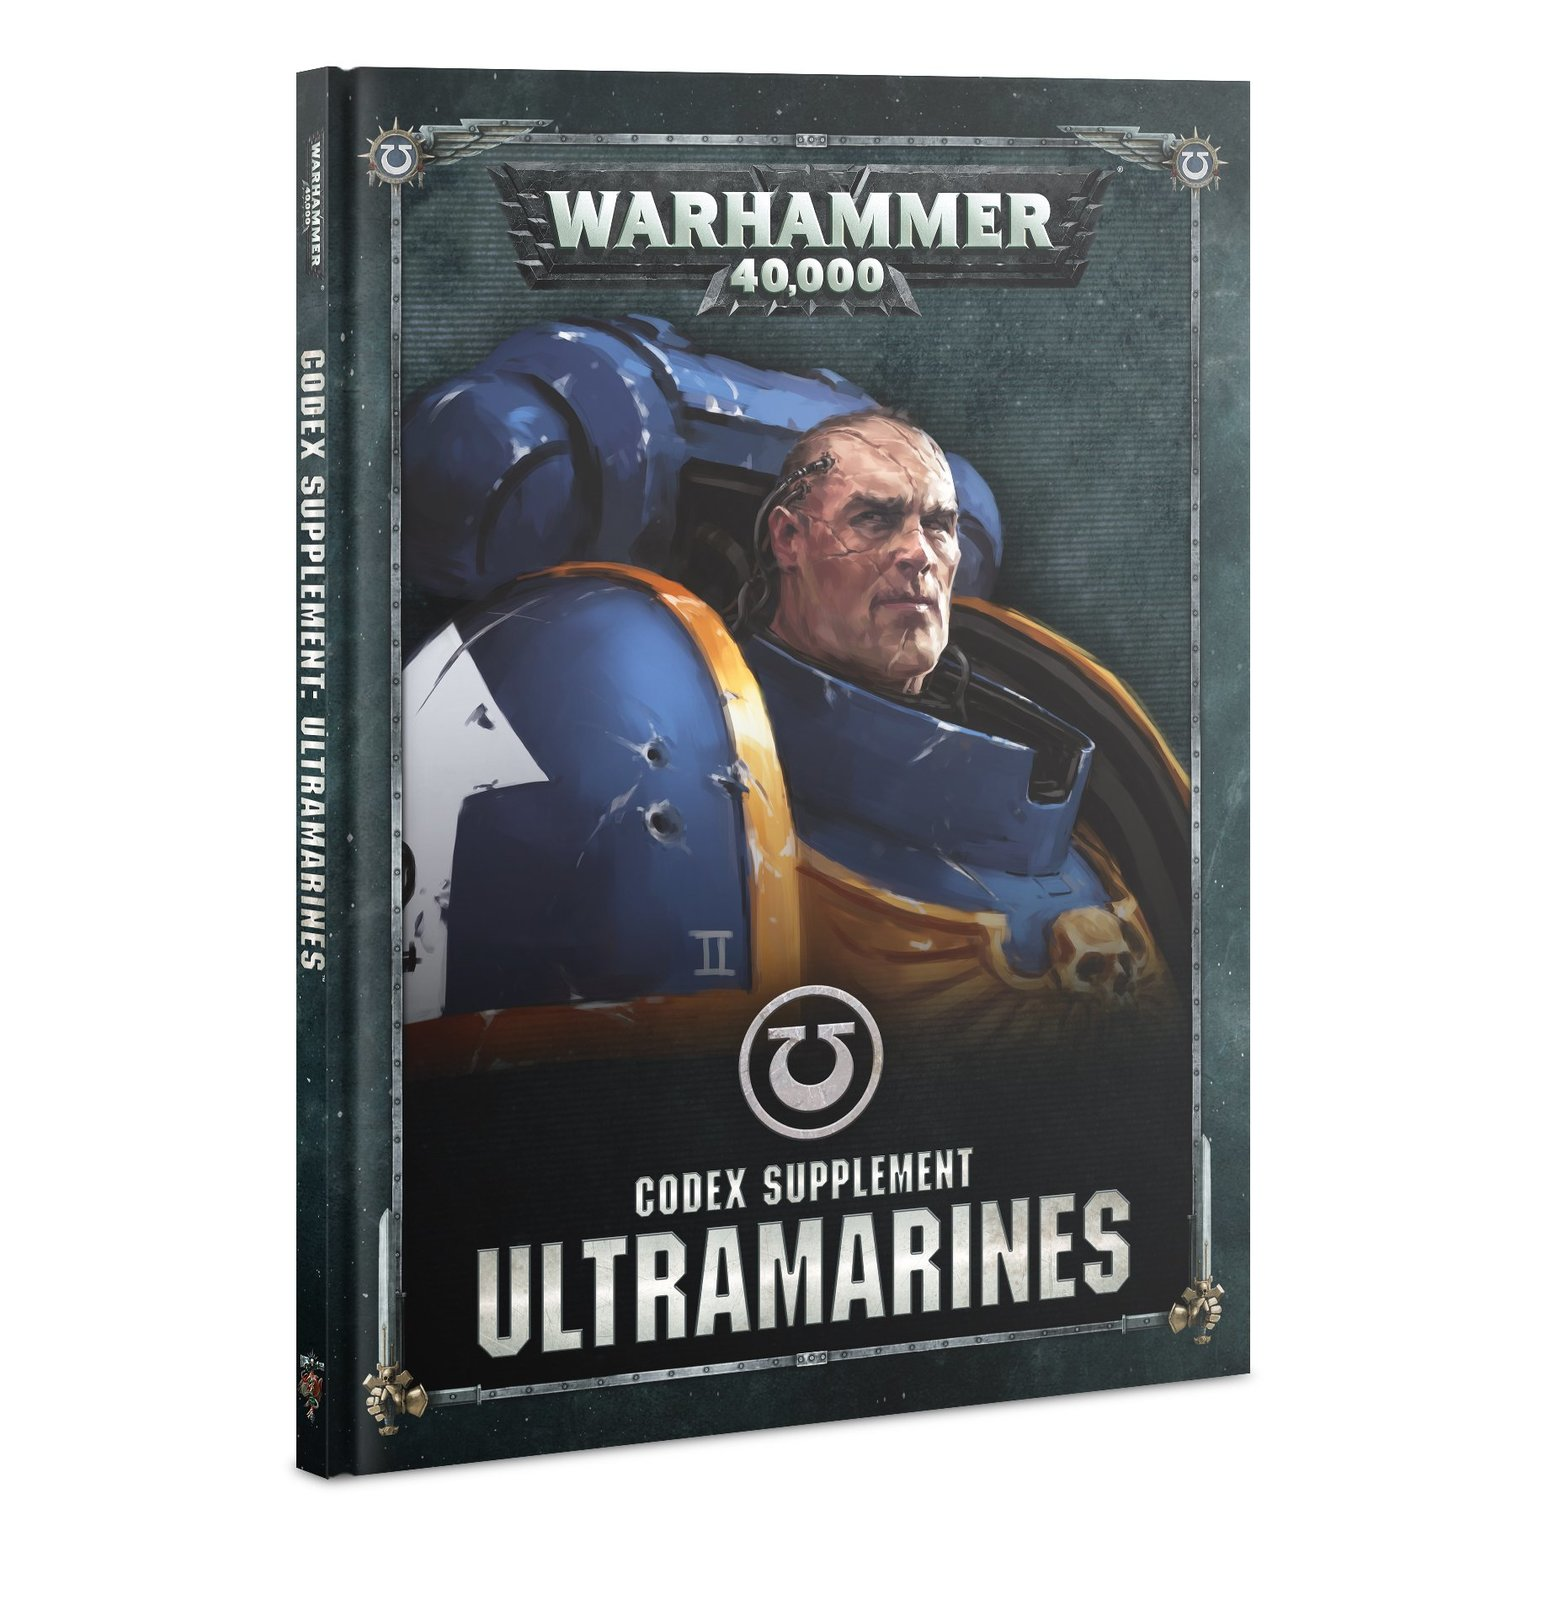 Warhammer 40,000 Codex: Ultramarines image